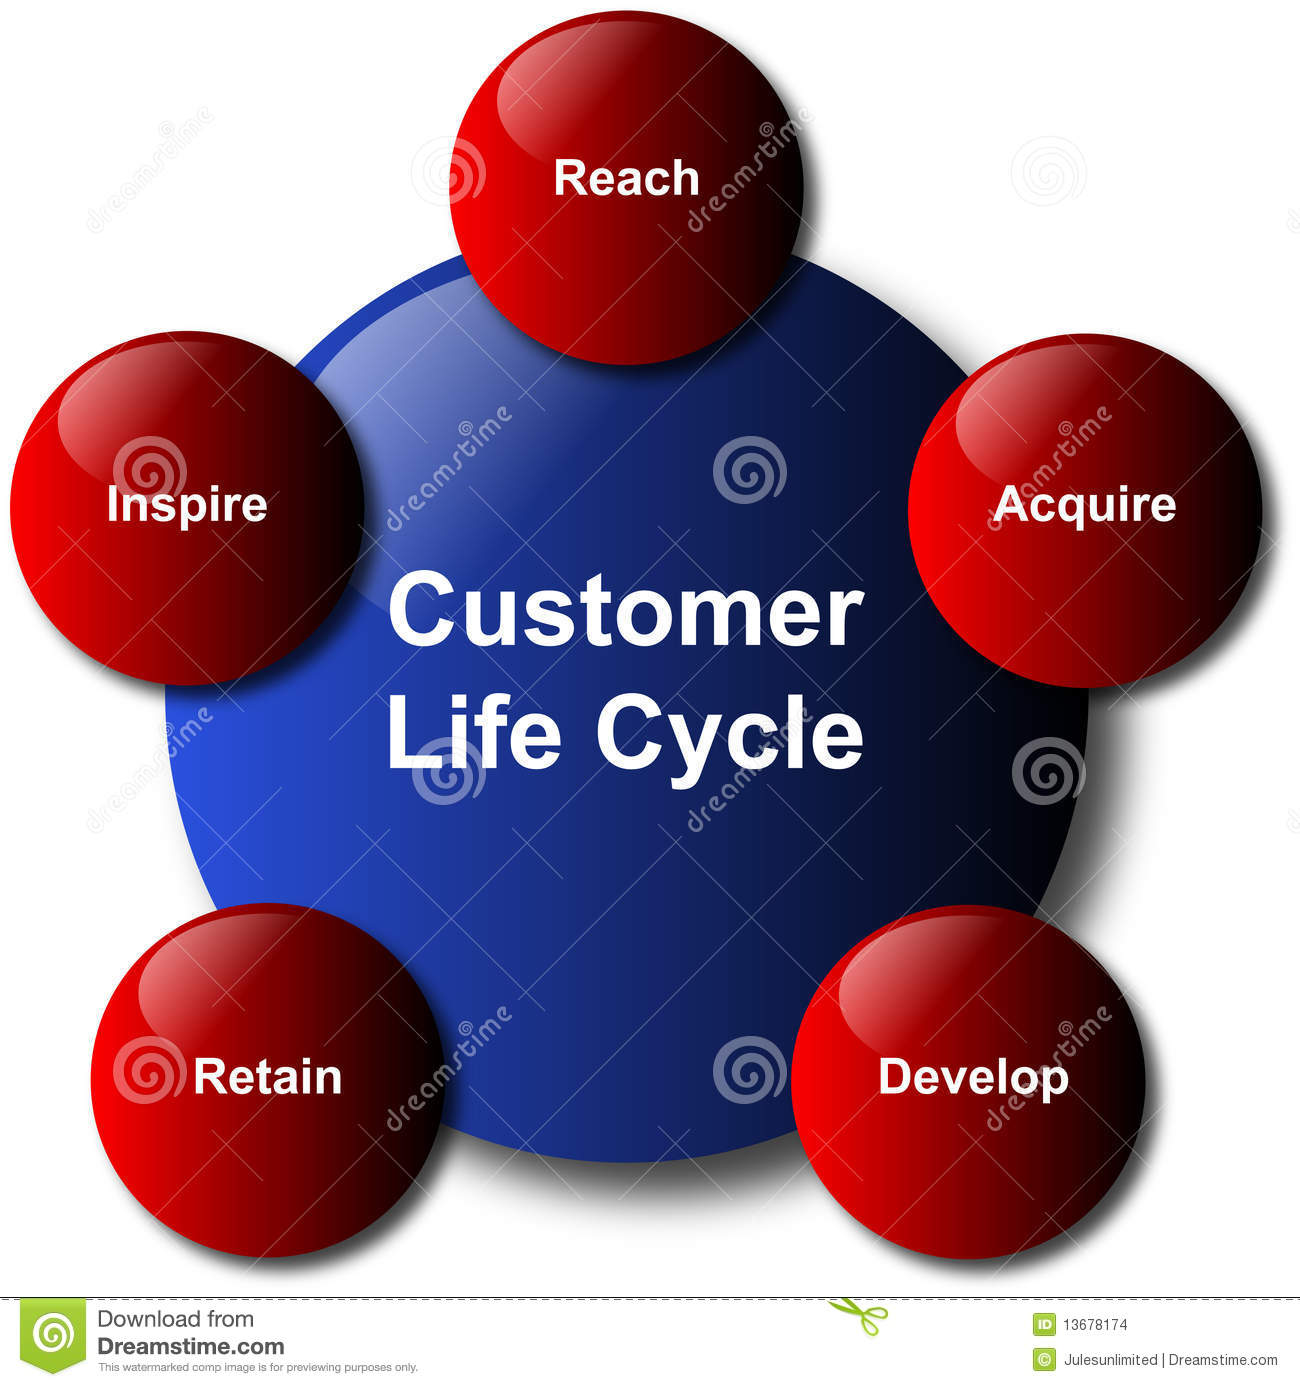 customer life cycle busines diagram stock images   image    customer life cycle busines diagram